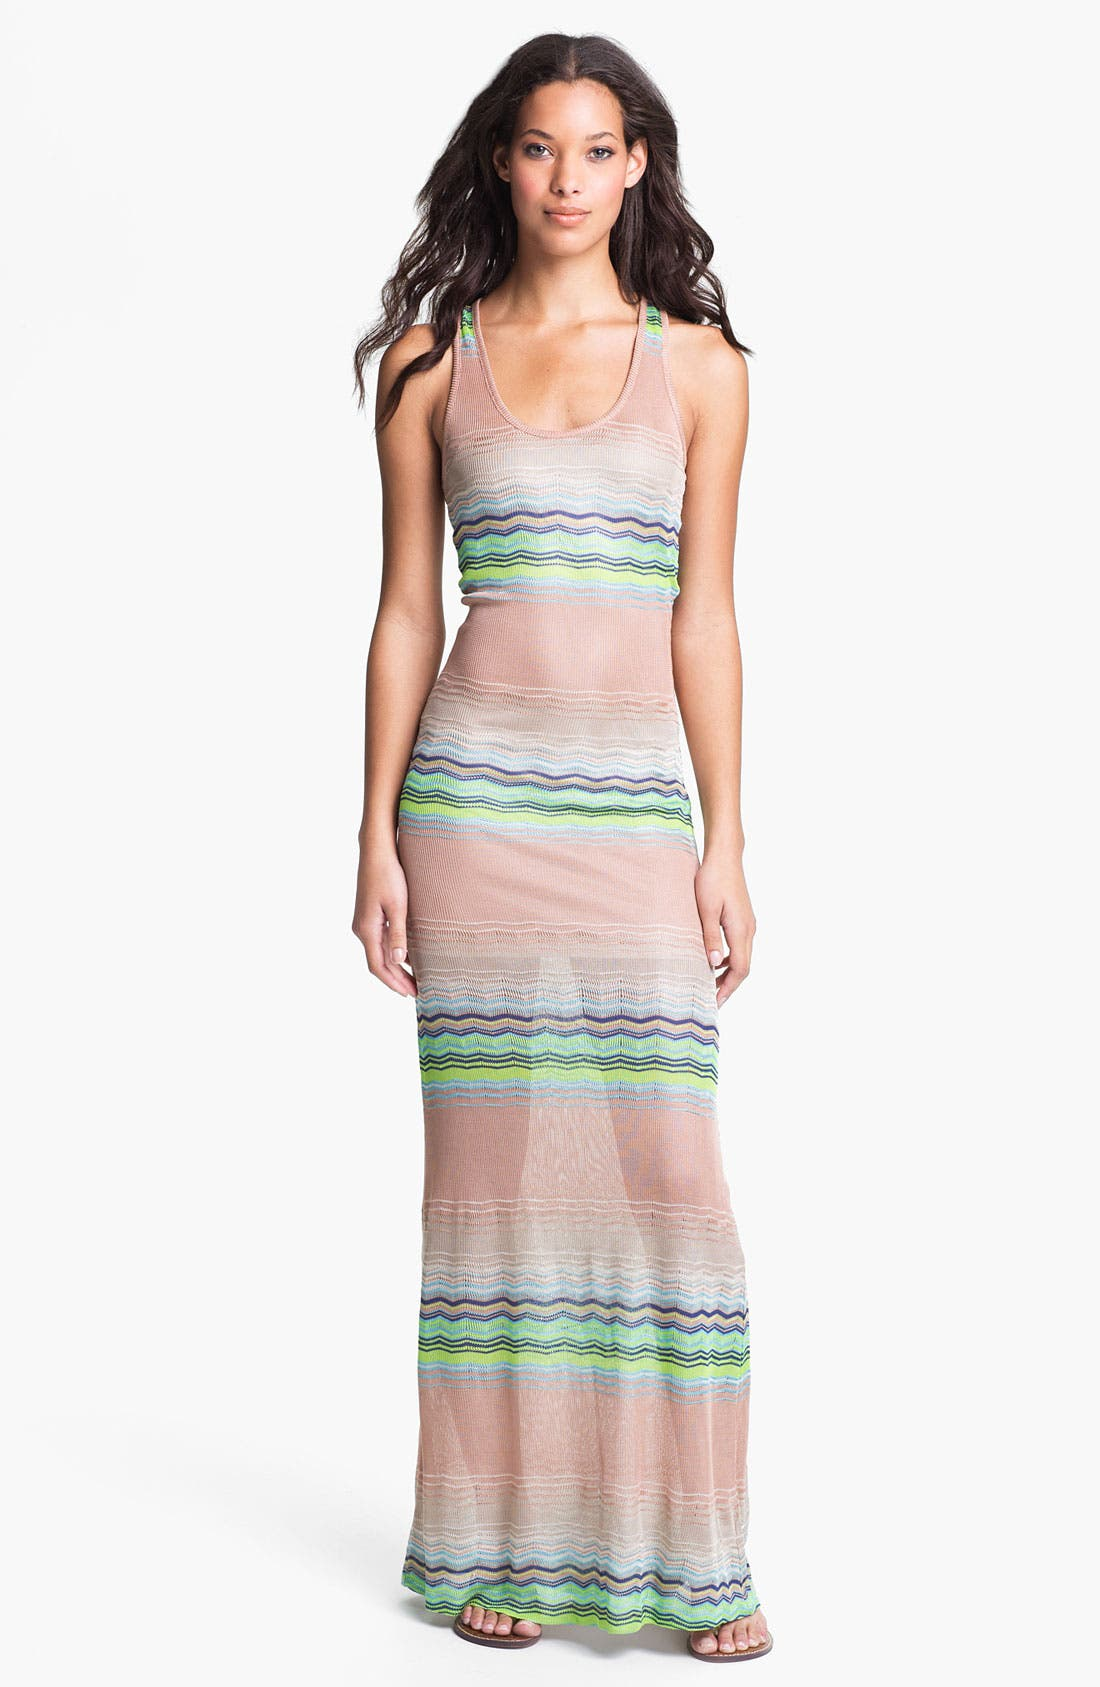 Main Image - Young, Fabulous & Broke 'Hamptons' Zigzag Stripe Maxi Dress